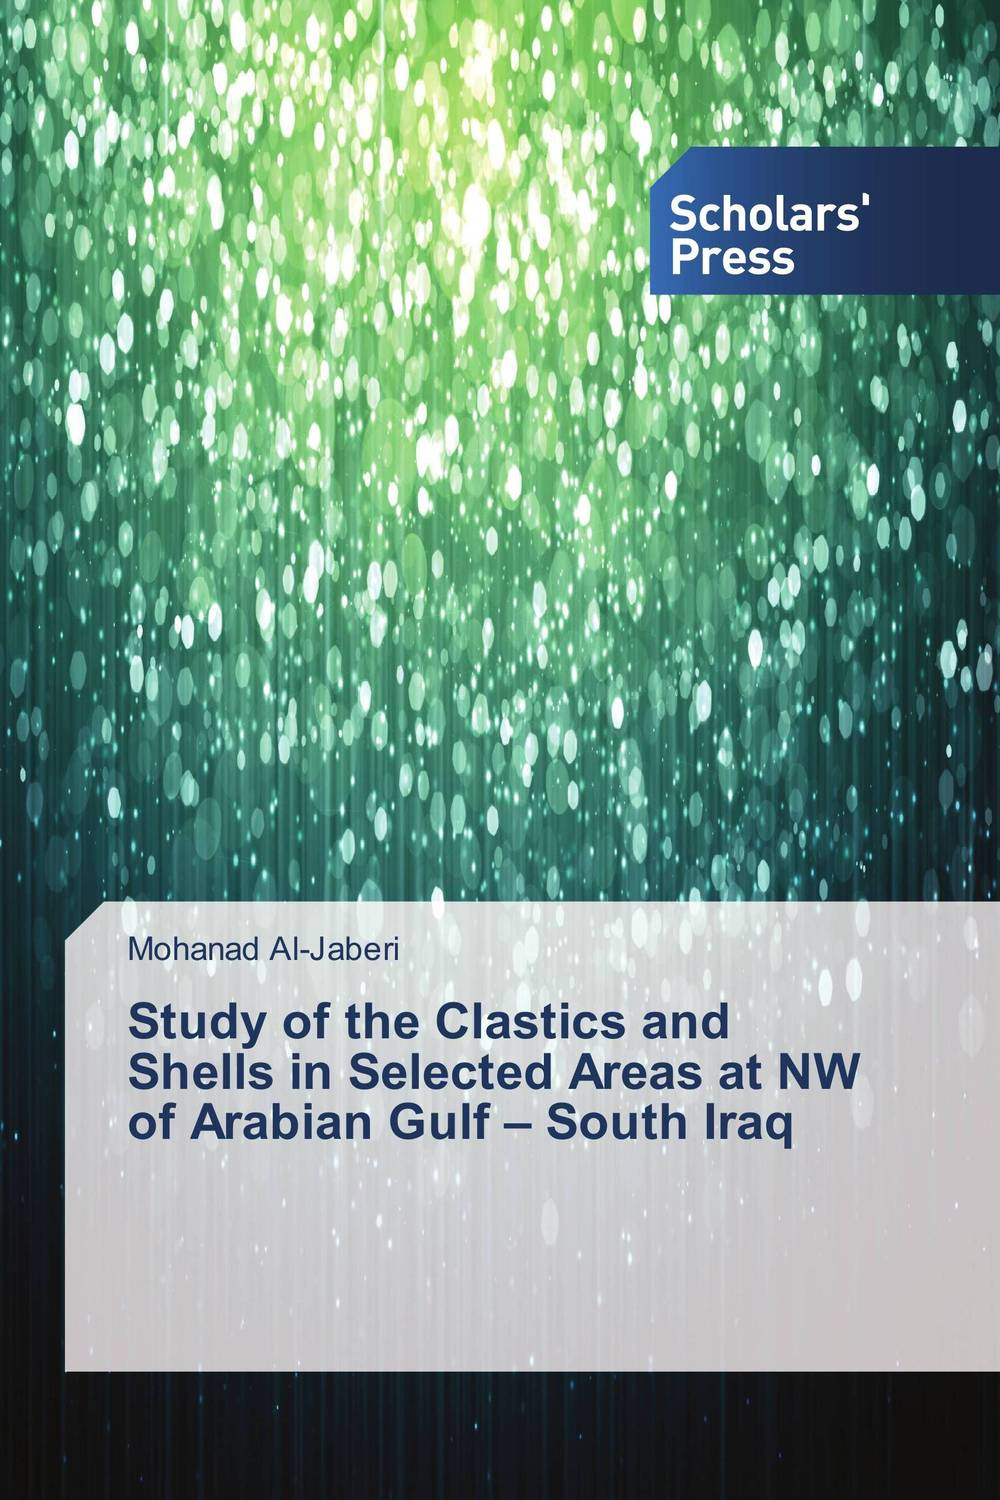 Study of the Clastics and Shells in Selected Areas at NW of Arabian Gulf – South Iraq a stylistic study of the language of selected greeting cards